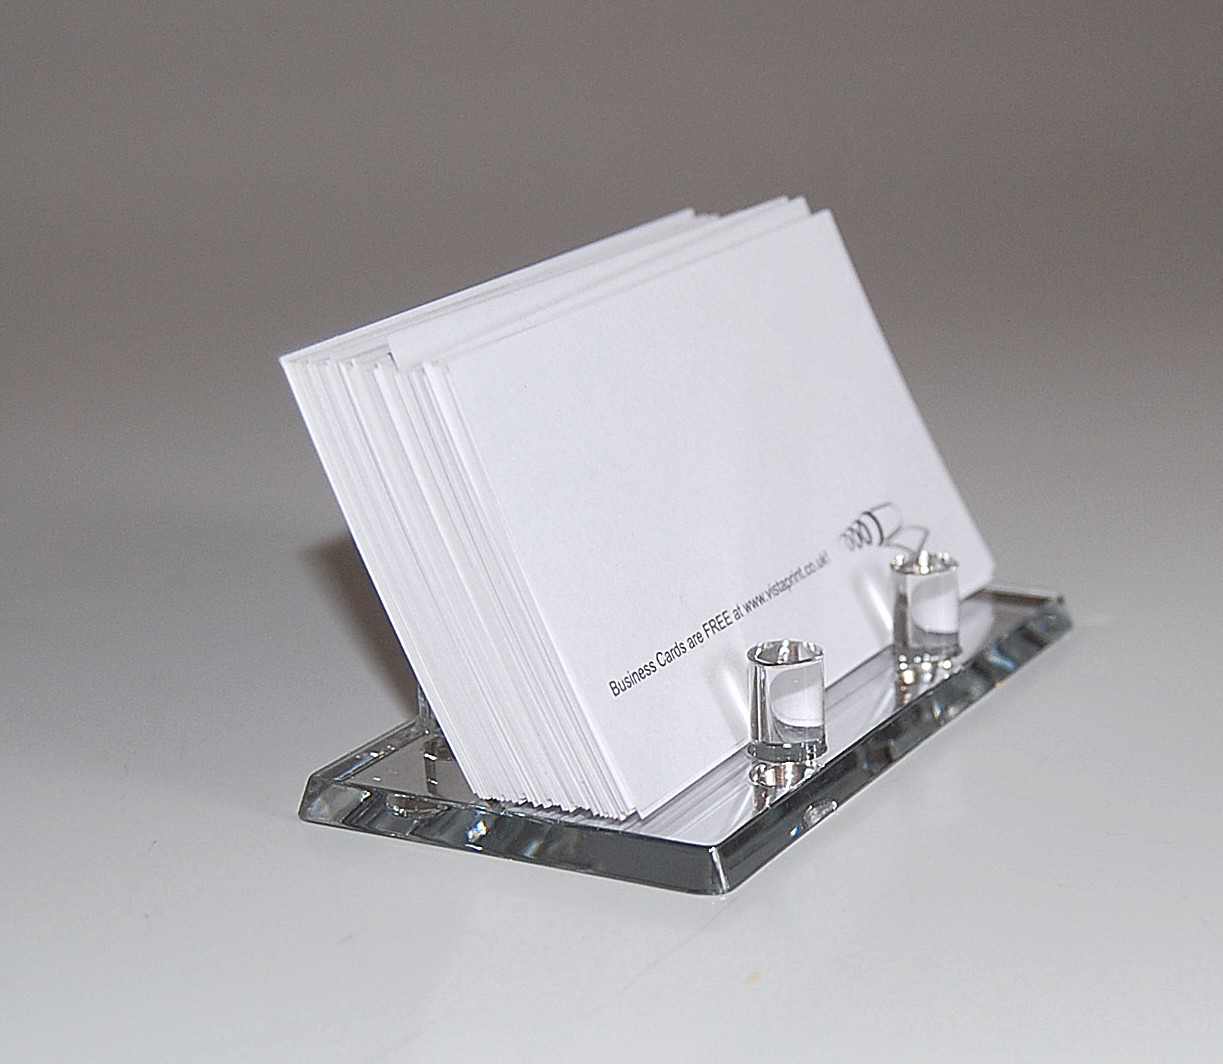 MIRROR ACRYLIC BUSINESS CARD HOLDER DISPLAY eBay